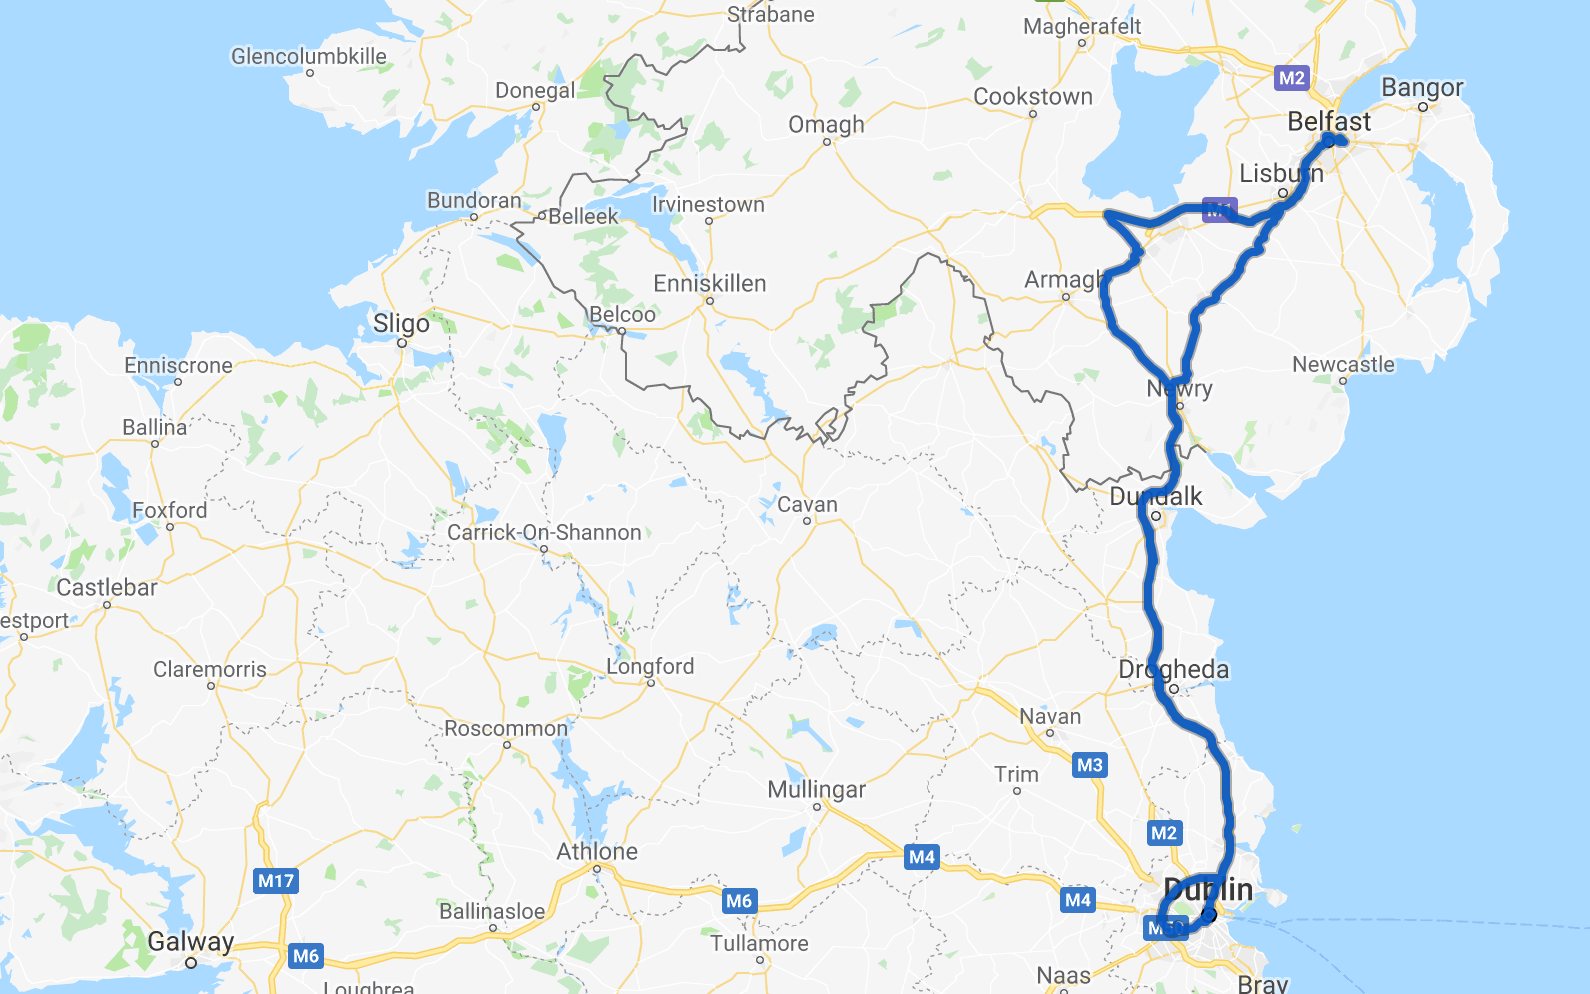 Dublin, Ireland, to Belfast, Northern Ireland, and back